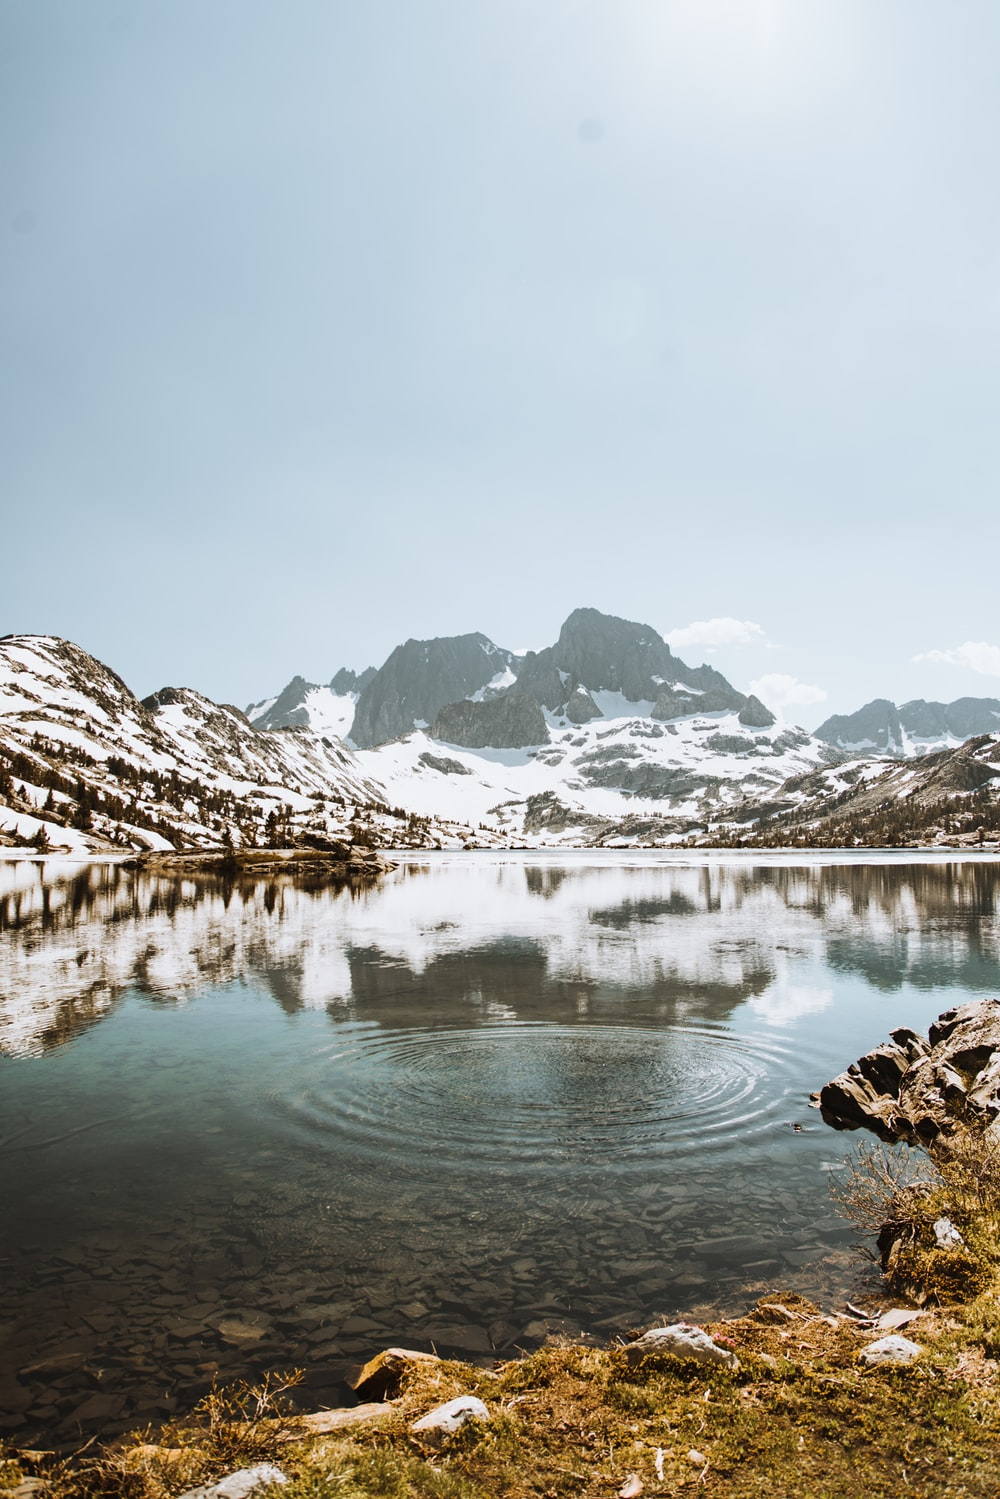 body of water surrounded by mountains covered with snow during daytime